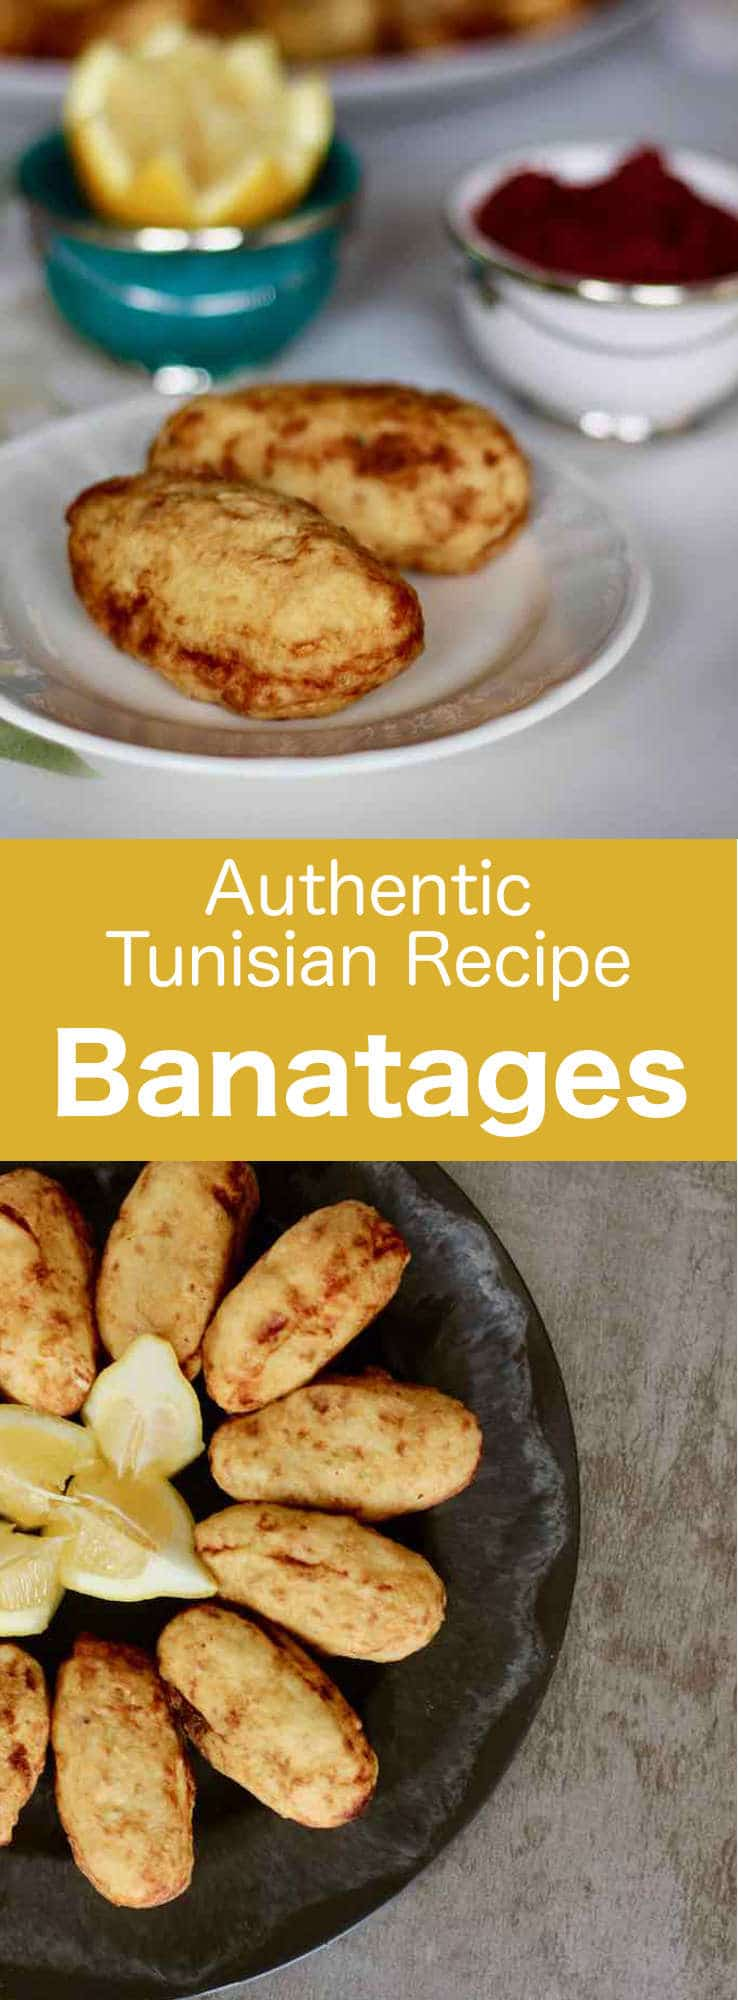 Banatages are delicious meat-filled fried potato croquettes that are originally from Tunisia. They can be served as an appetizer,. drizzled with lemon juice, or as a main course with a salad. #Tunisia #Tunisian #TunisianCuisine #TunisianRecipe #NorthAfricanCuisine #NorthAfricanRecipe #NorthAfrica #Maghreb #MaghrebCuisine #croquette #WorldCuisine #196flavors